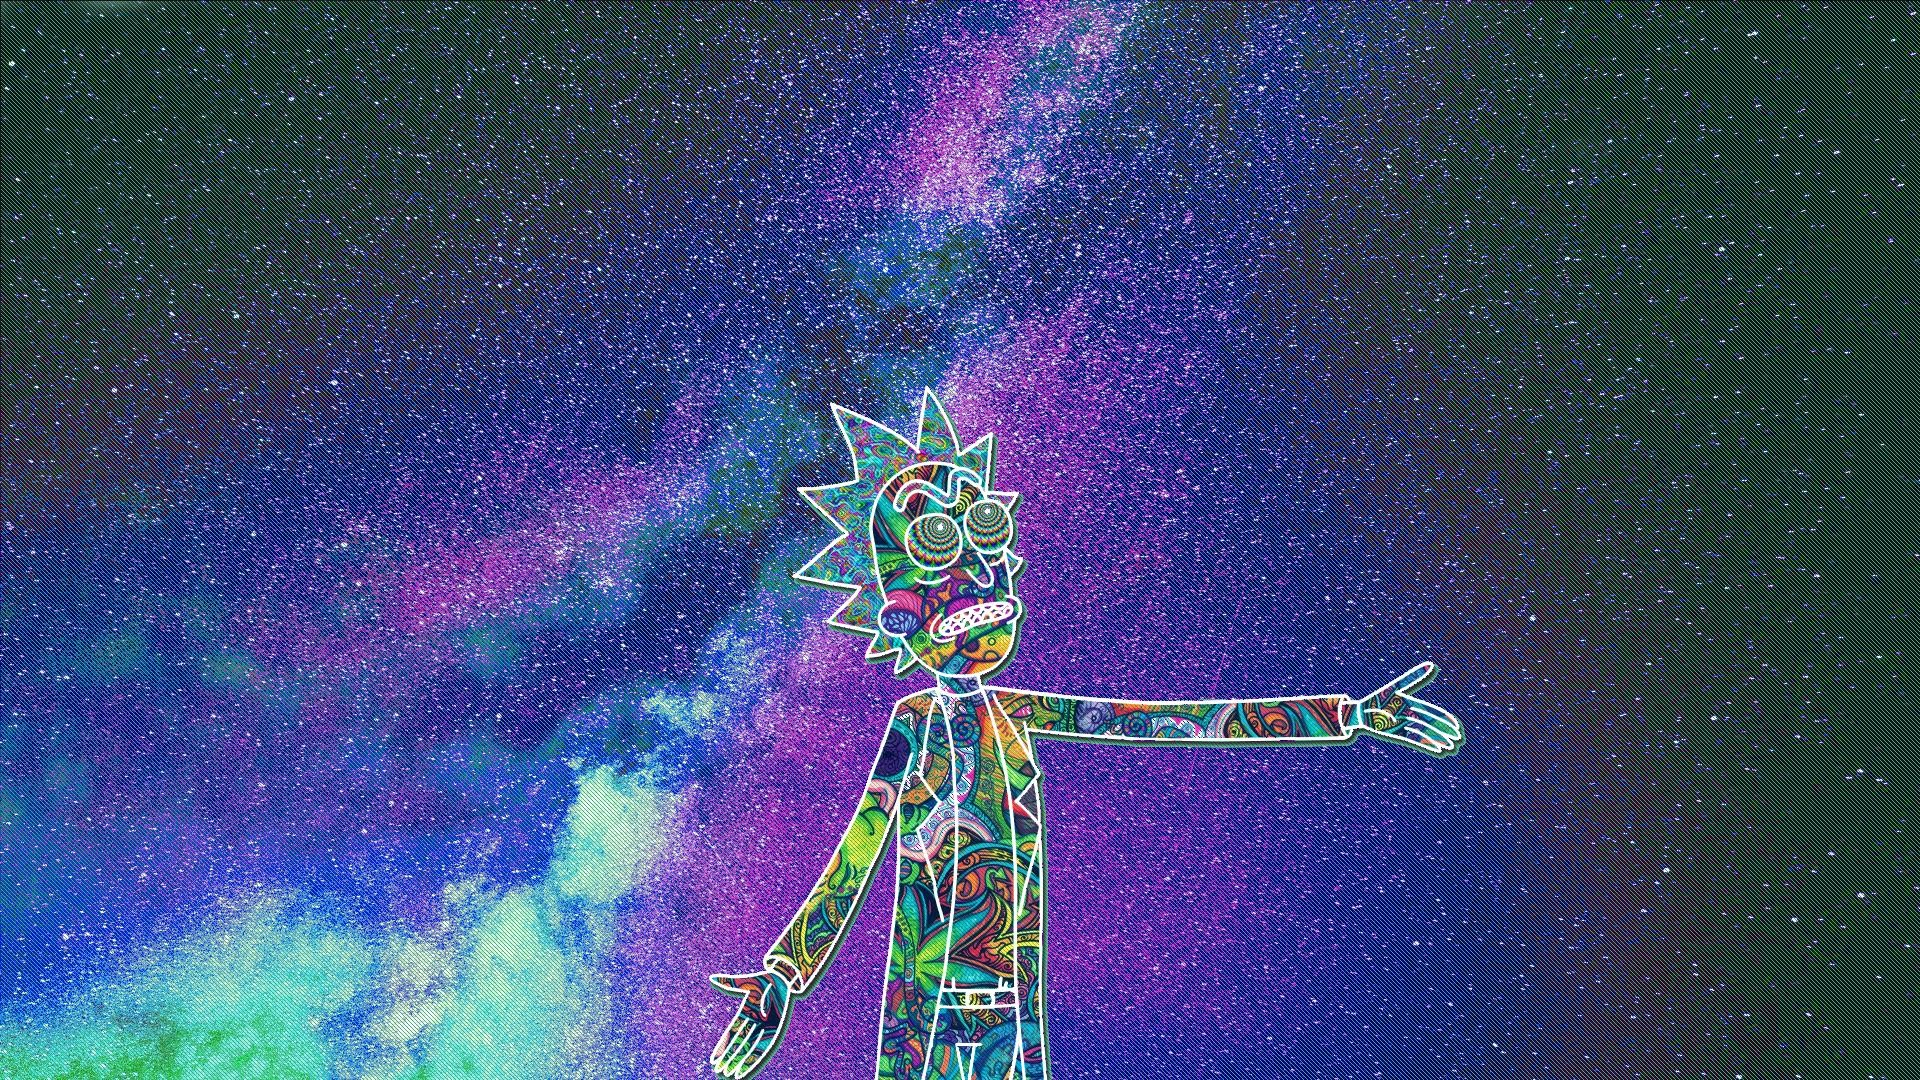 Rick And Morty Wallpaper ·① Download Free HD Wallpapers Of